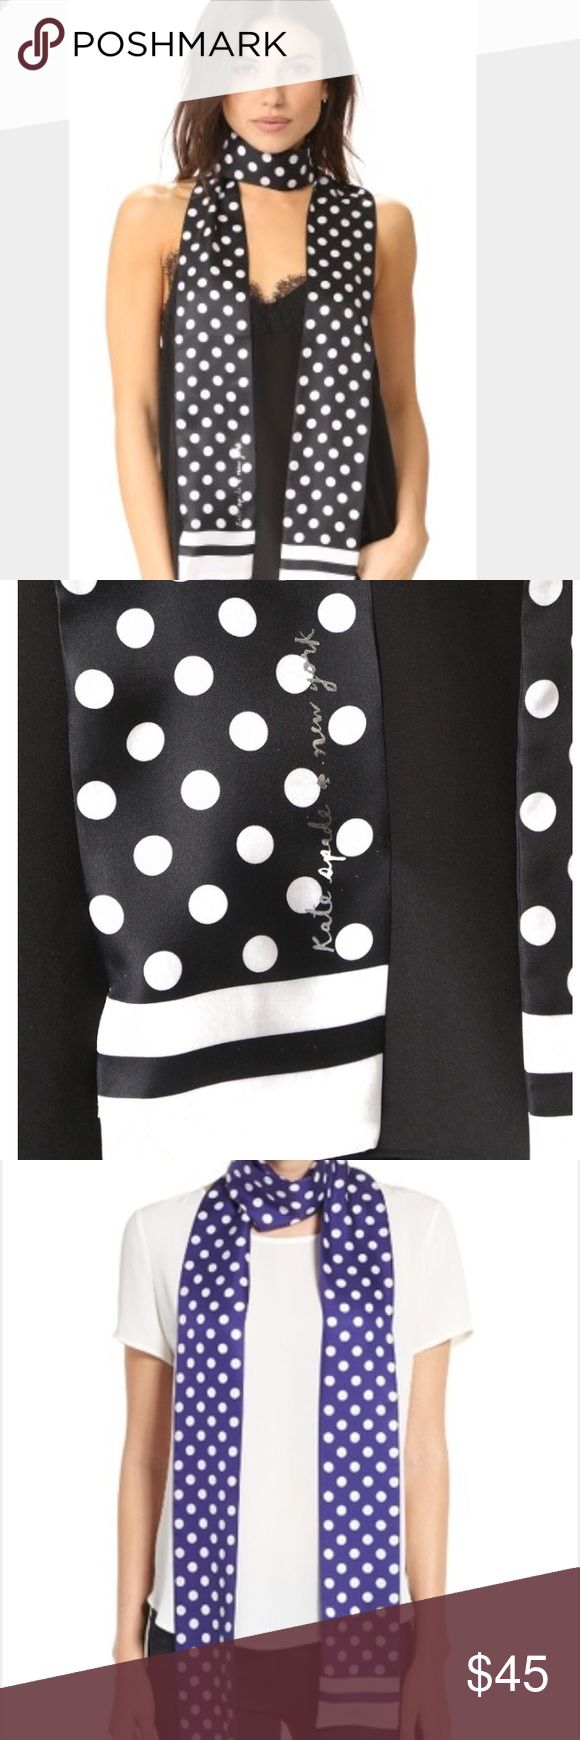 """NWTs Kate Spade Blue White Polka Dot Skinny Scarf Add a retro twist to any look with a long skinny scarf! 4"""" x 102"""" 100% Silk.  Perfect for summer! Black is sold out only Indigo Blue left! kate spade Accessories Scarves & Wraps"""